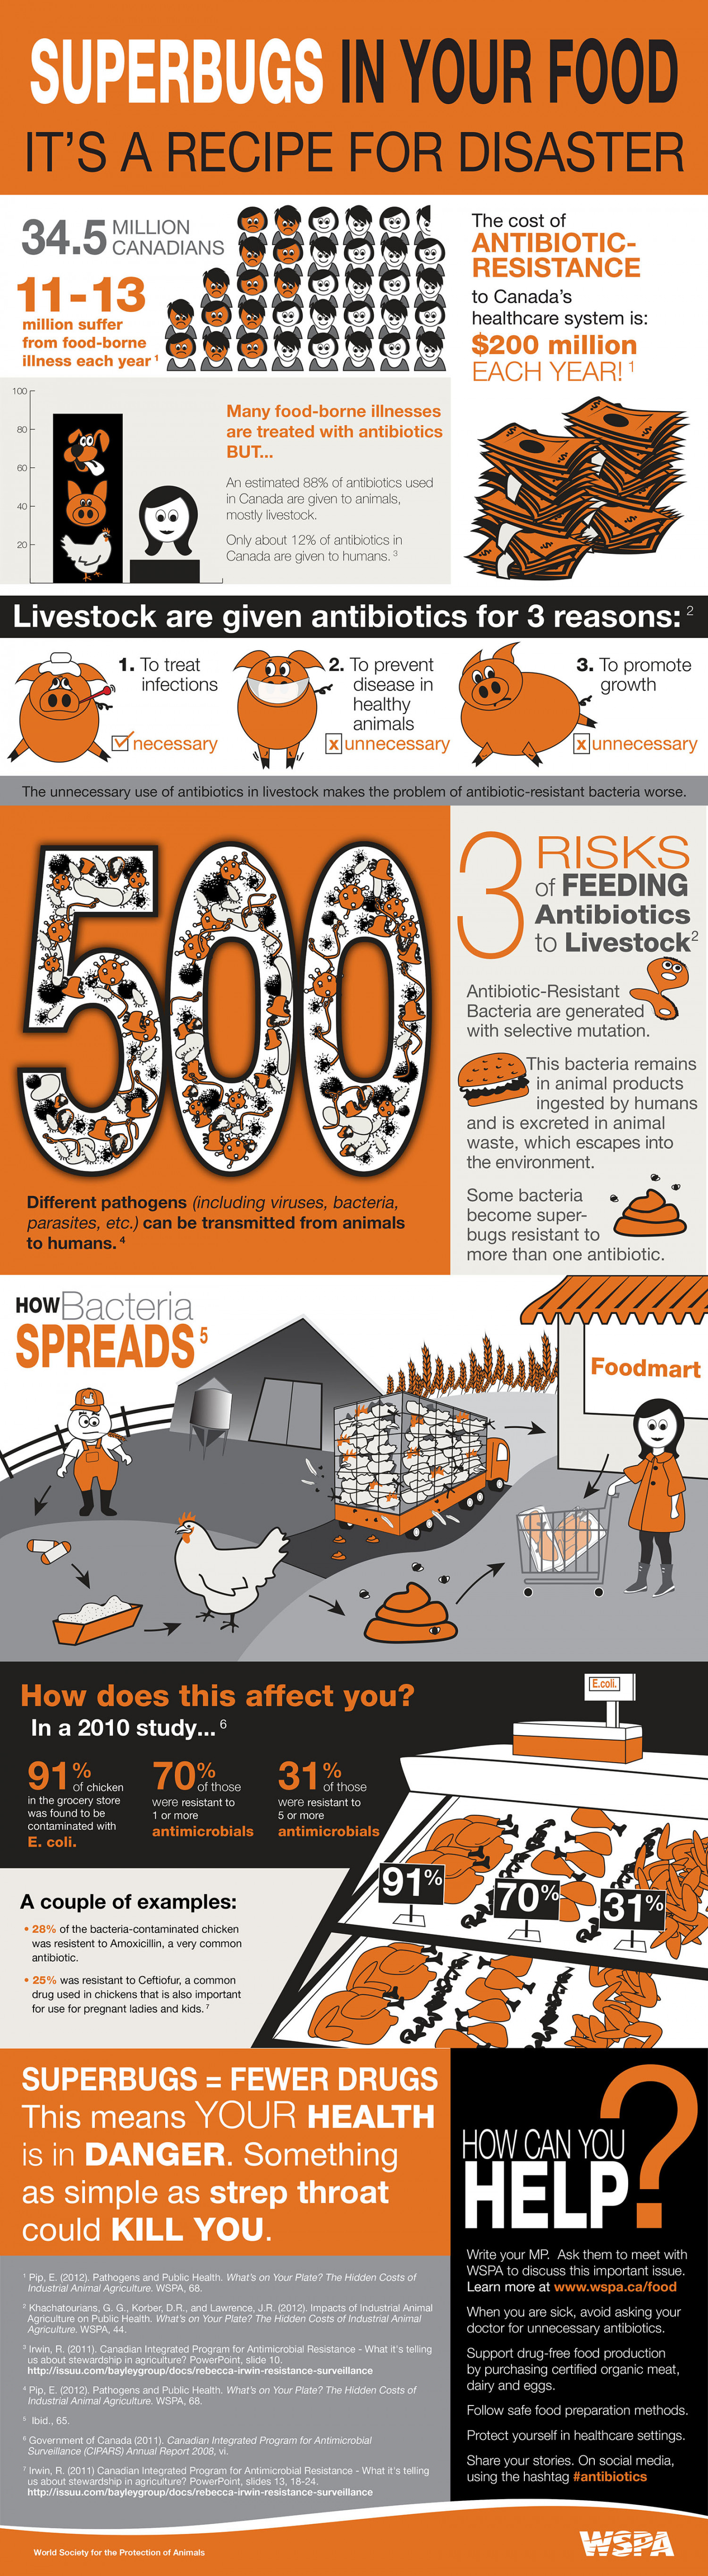 Superbugs in your food: It's a recipe for disaster Infographic